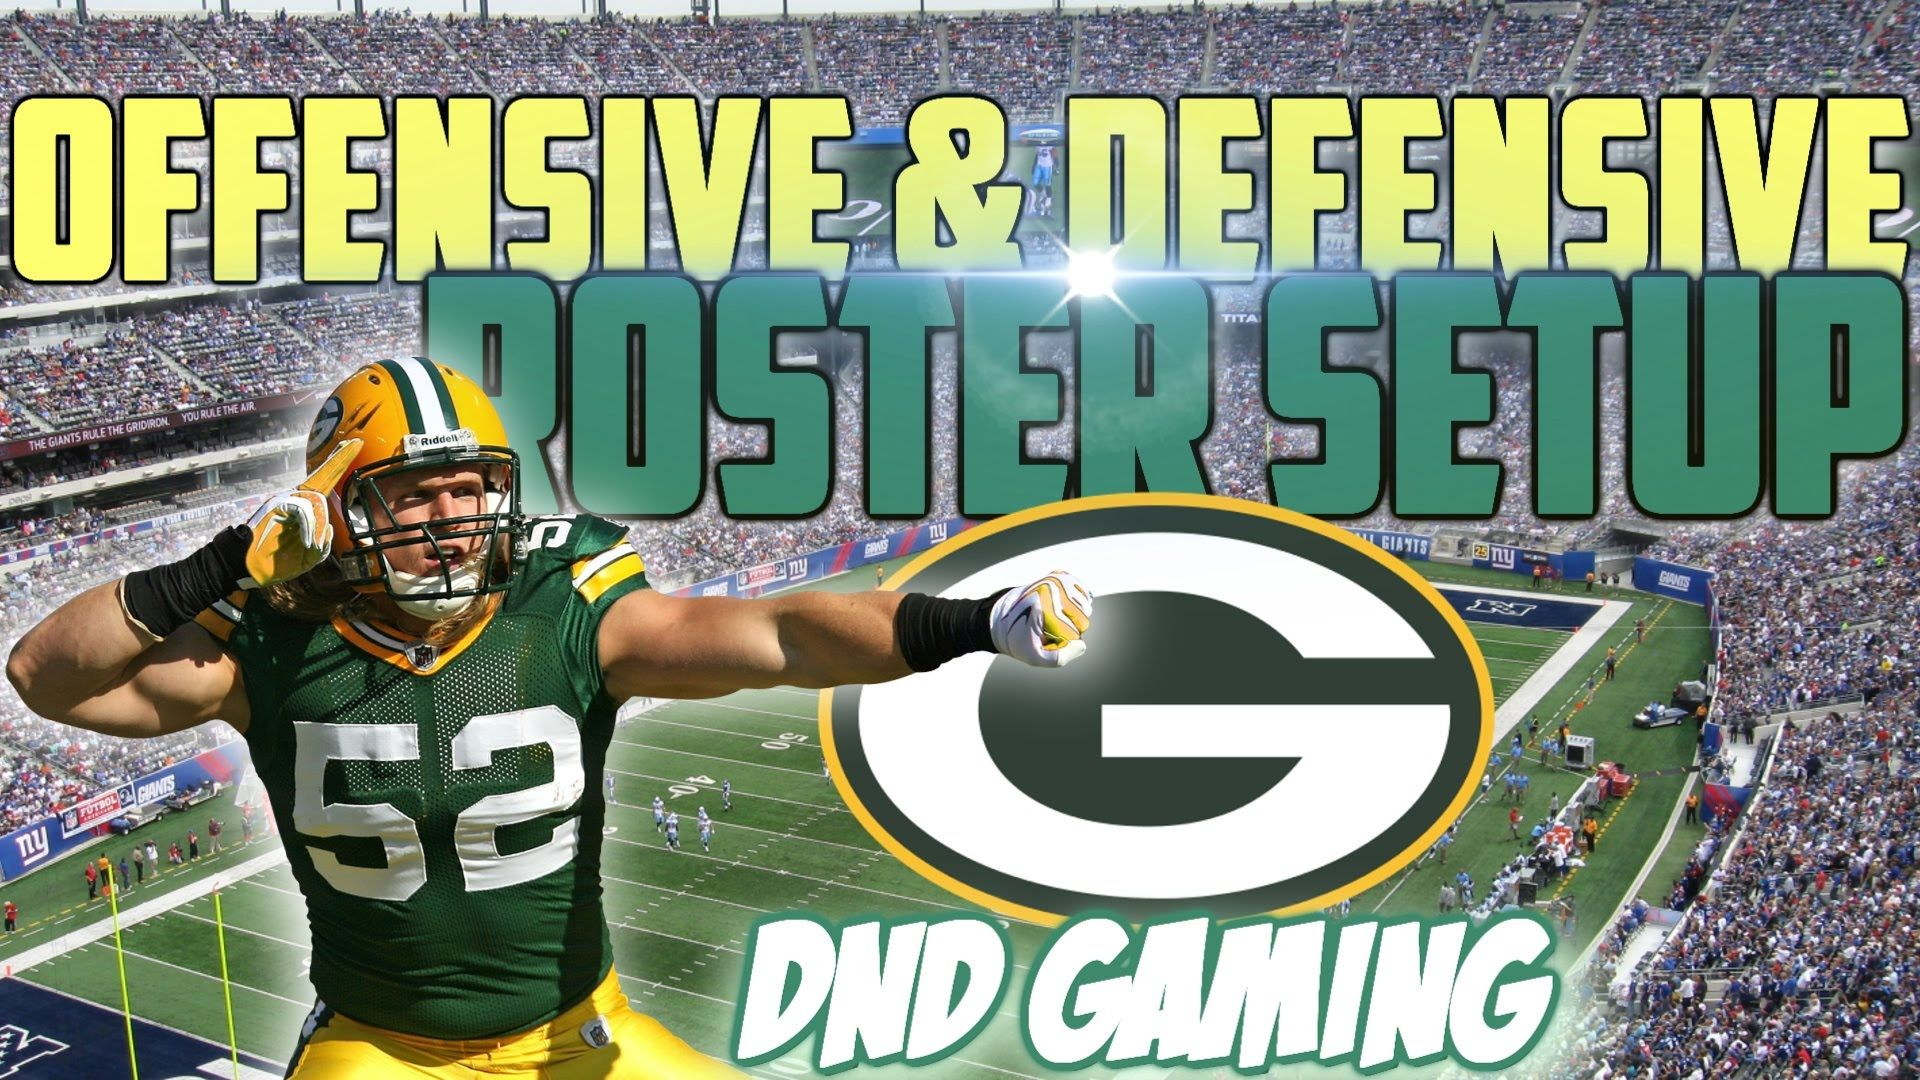 Free Madden 16 Tips Greenbay Packers Offensive Defensive Roster Setup Get Your Best In The Game Madden Nfl Green Bay Green Bay Packers